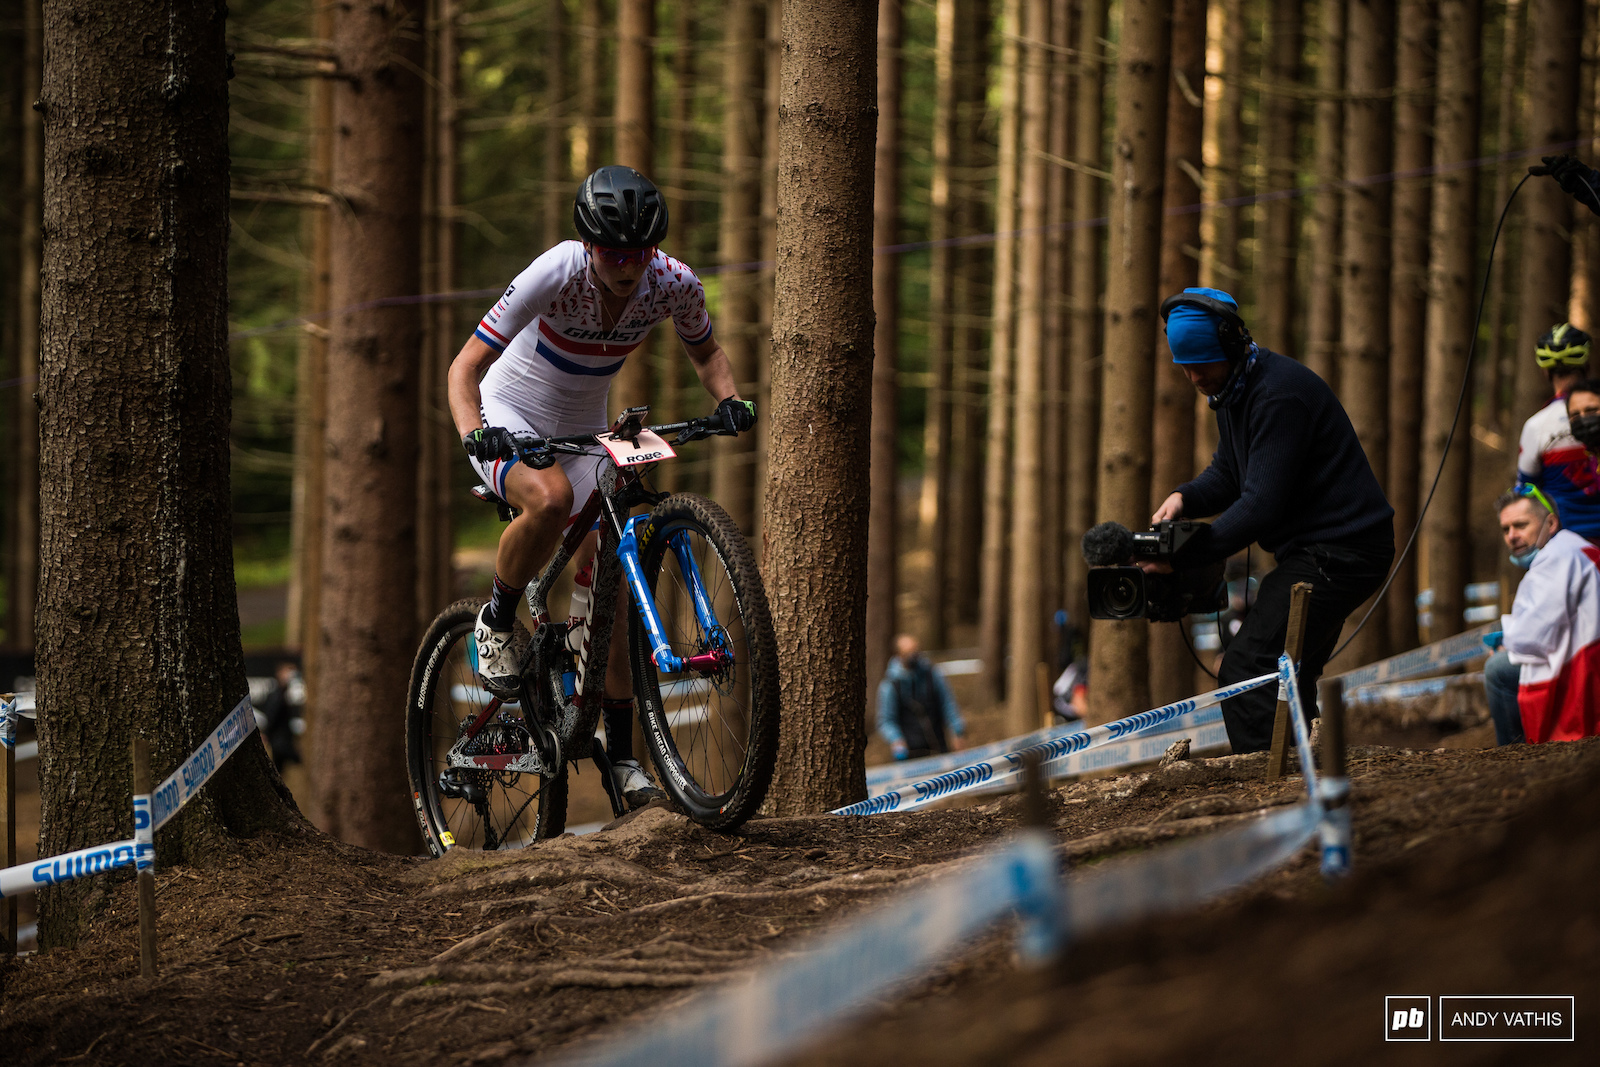 Anne Terpstra dug deep to keep up with Pauline s pace but would never pass her. Second on the day after a big effort.